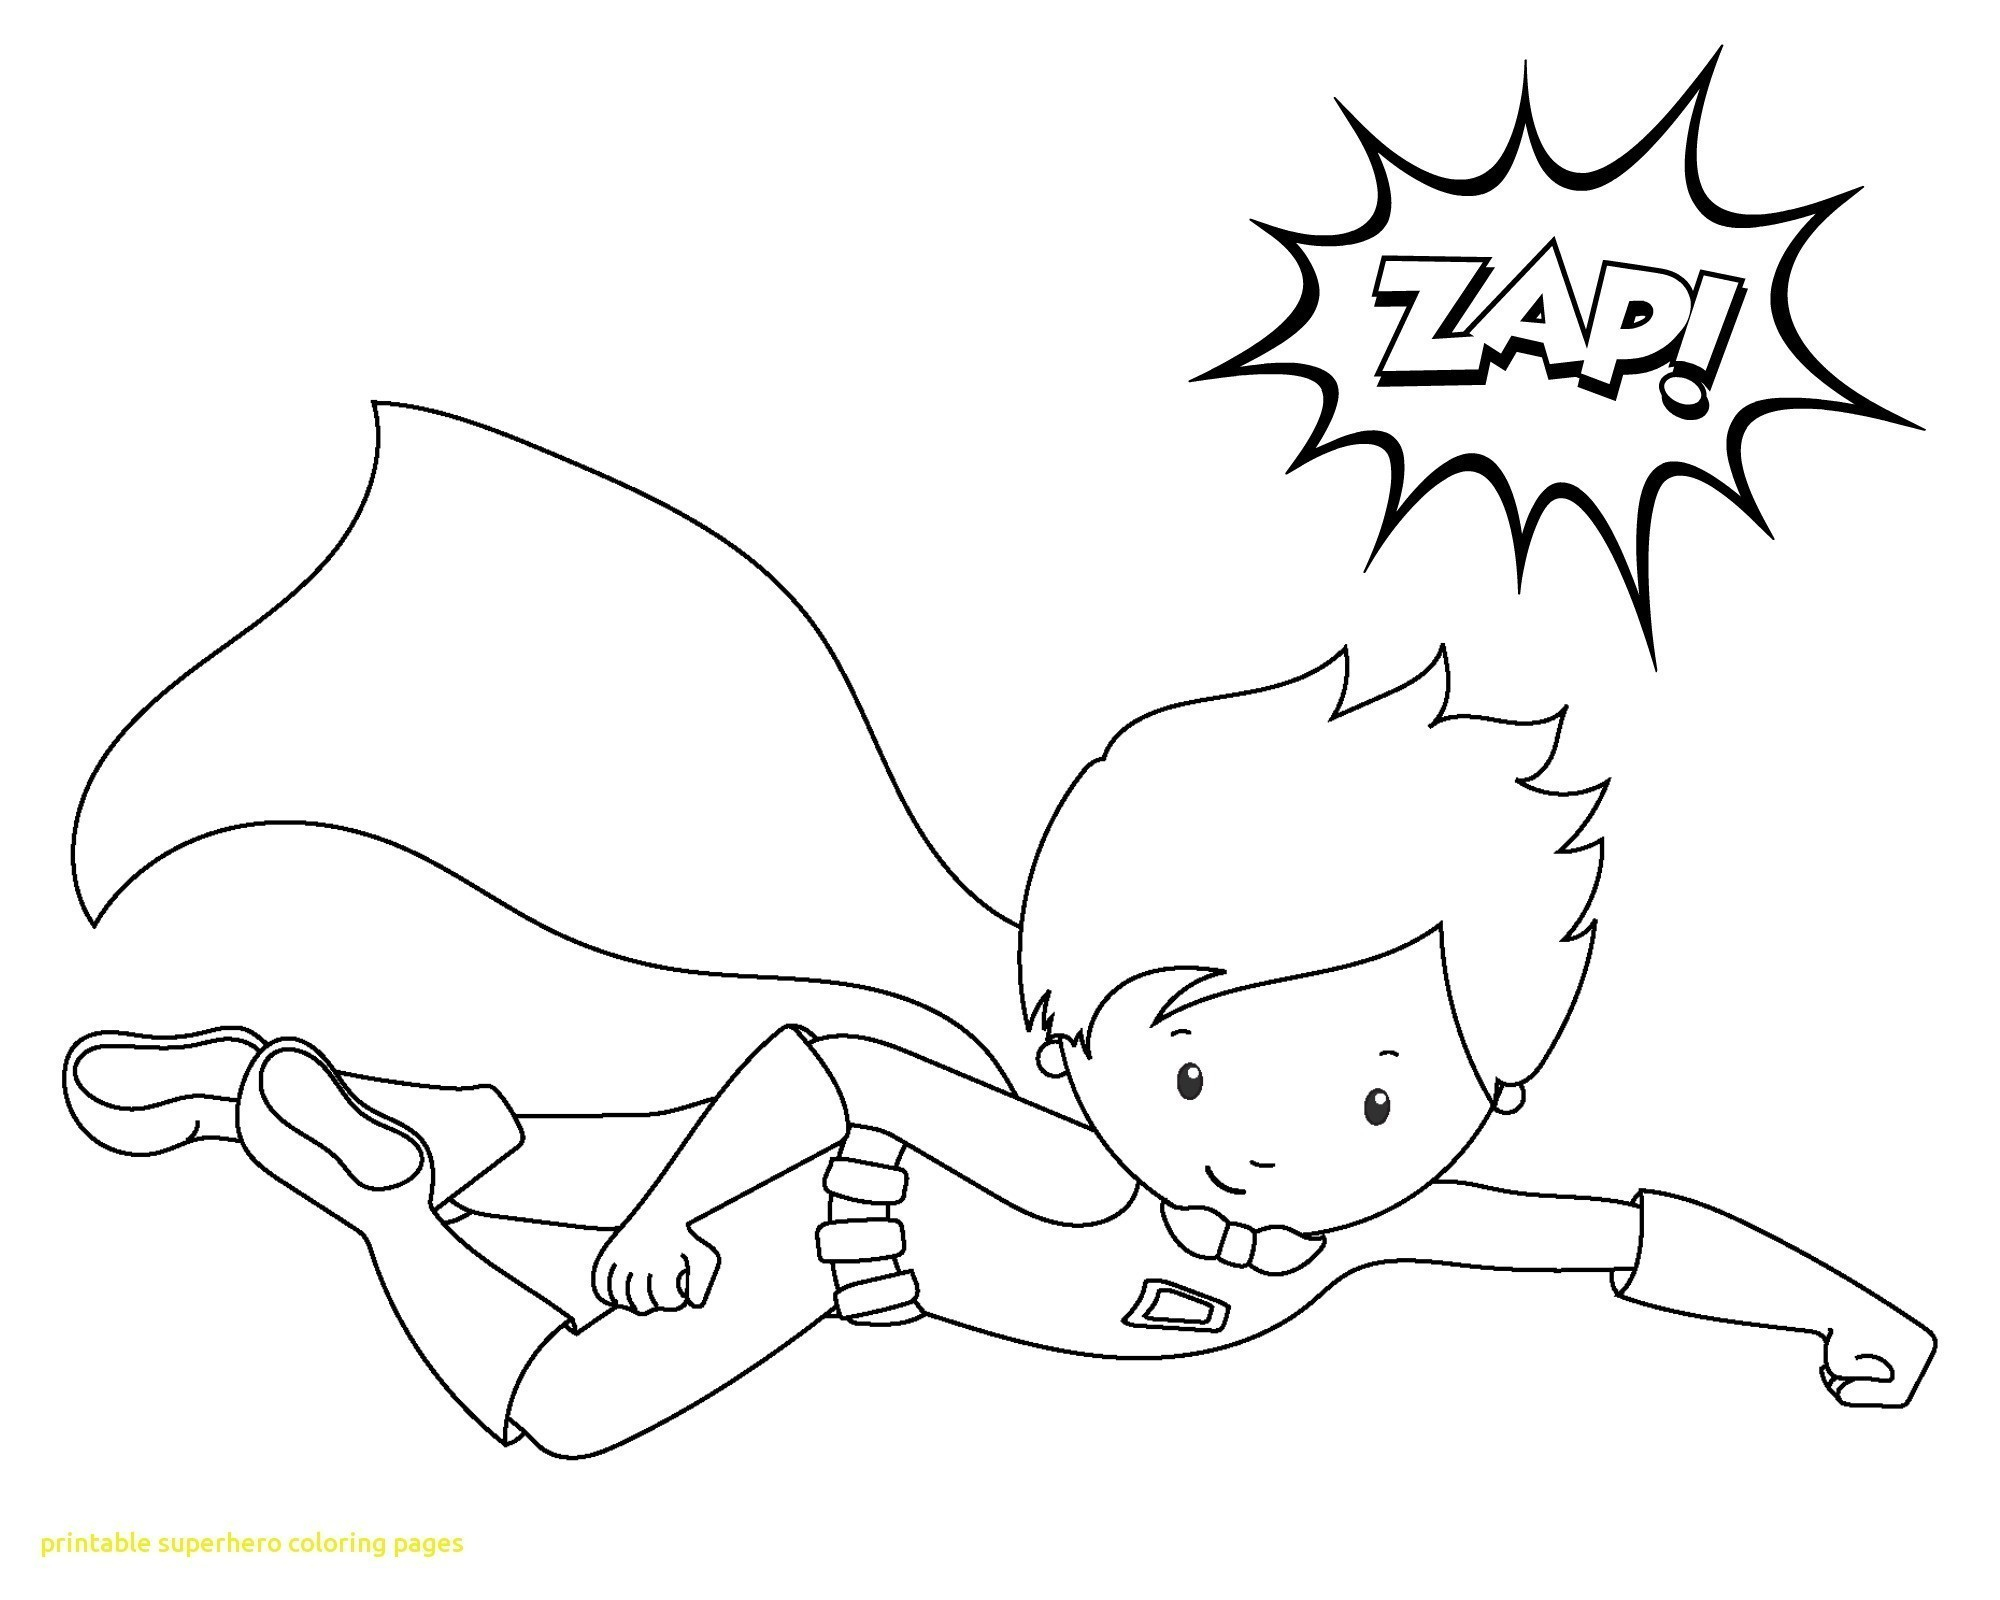 Superhero Coloring Books For Adults